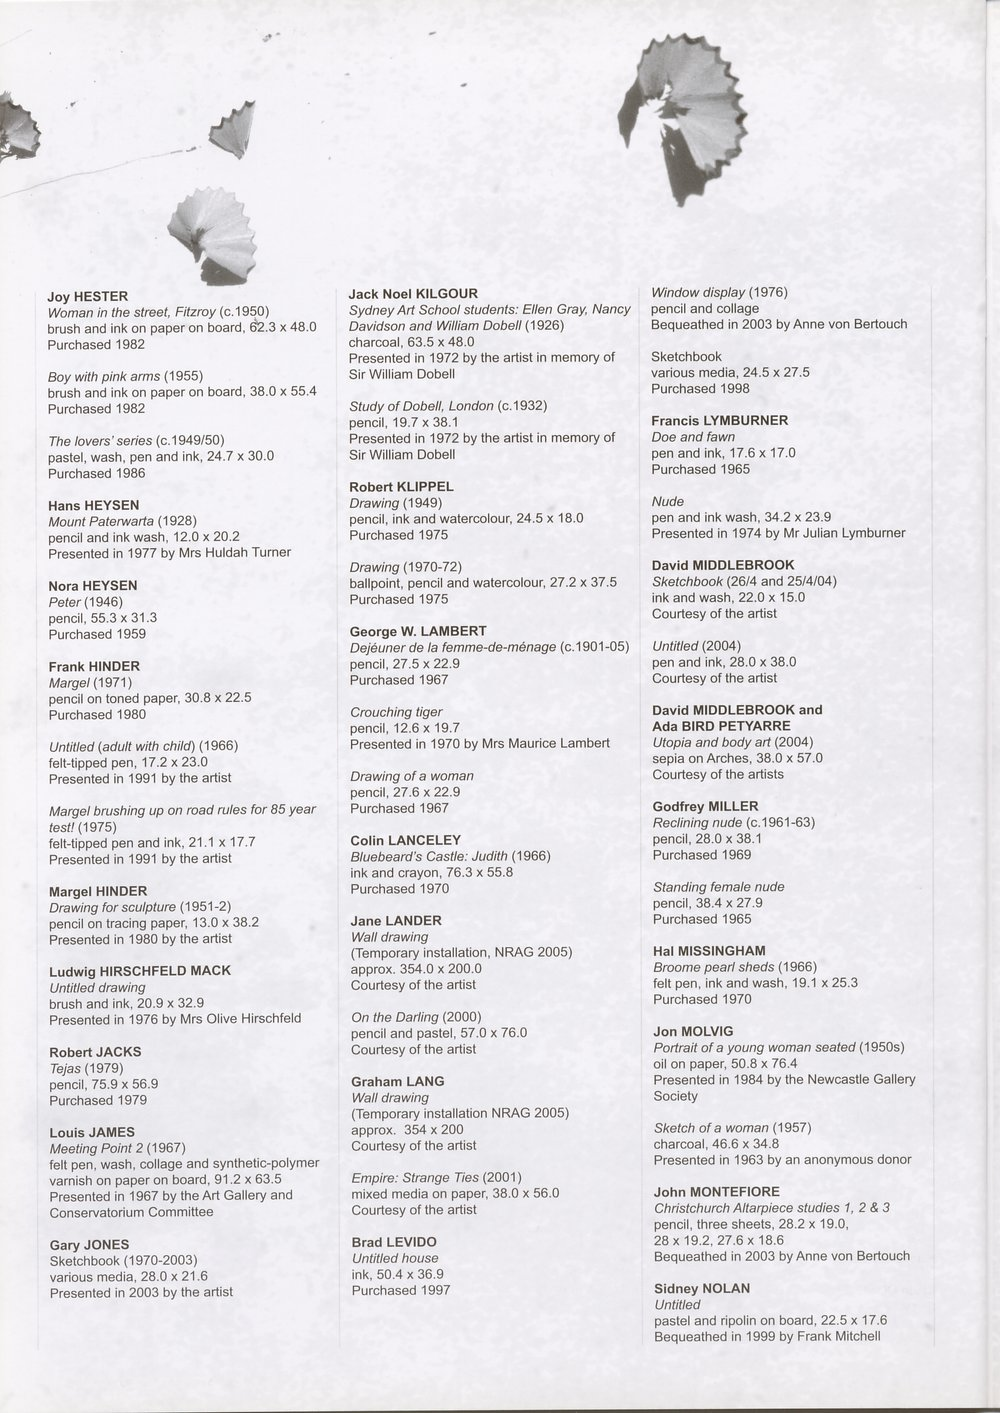 drawingCent-exhibtionchecklist (2)_Page_2.jpg